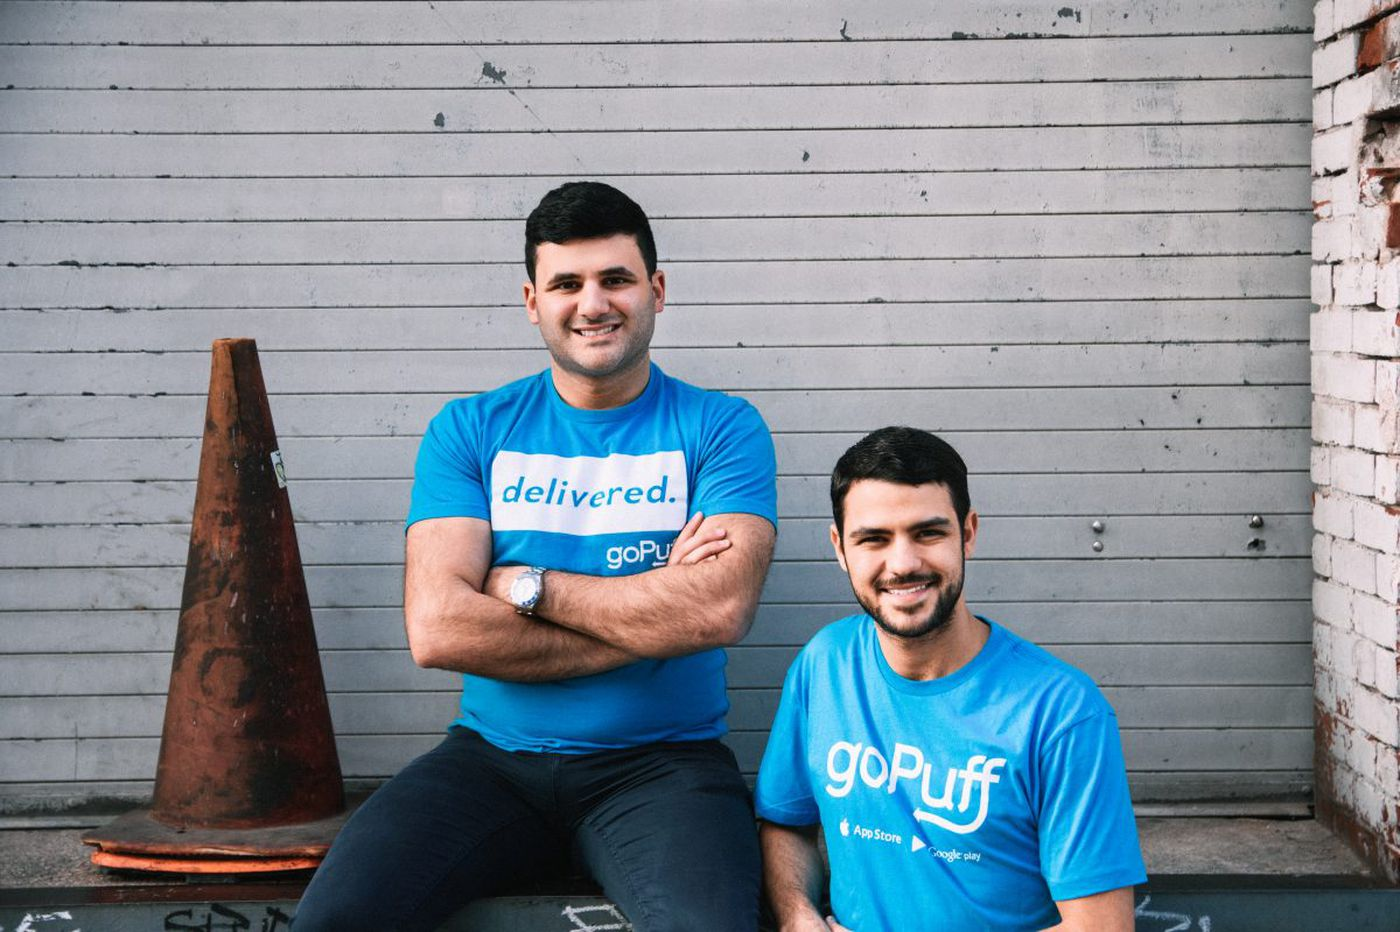 GoPuff to begin deliveries to Ardmore and Bethlehem